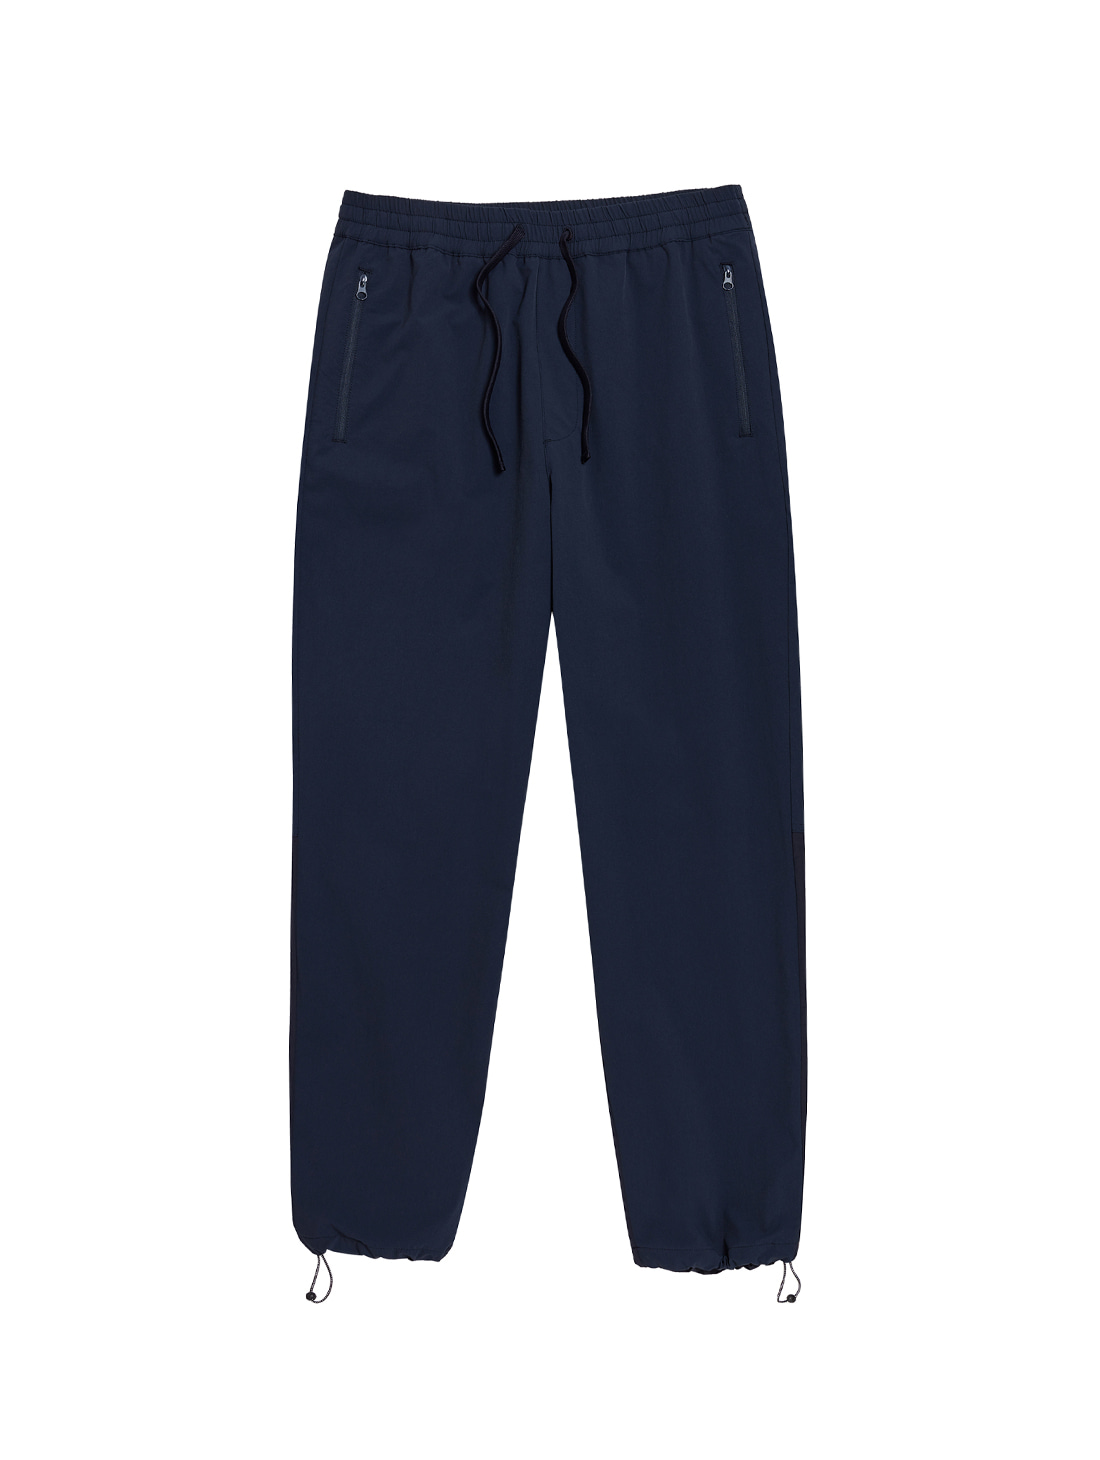 GOALSTUDIO DRAW STRING PANTS - NAVY